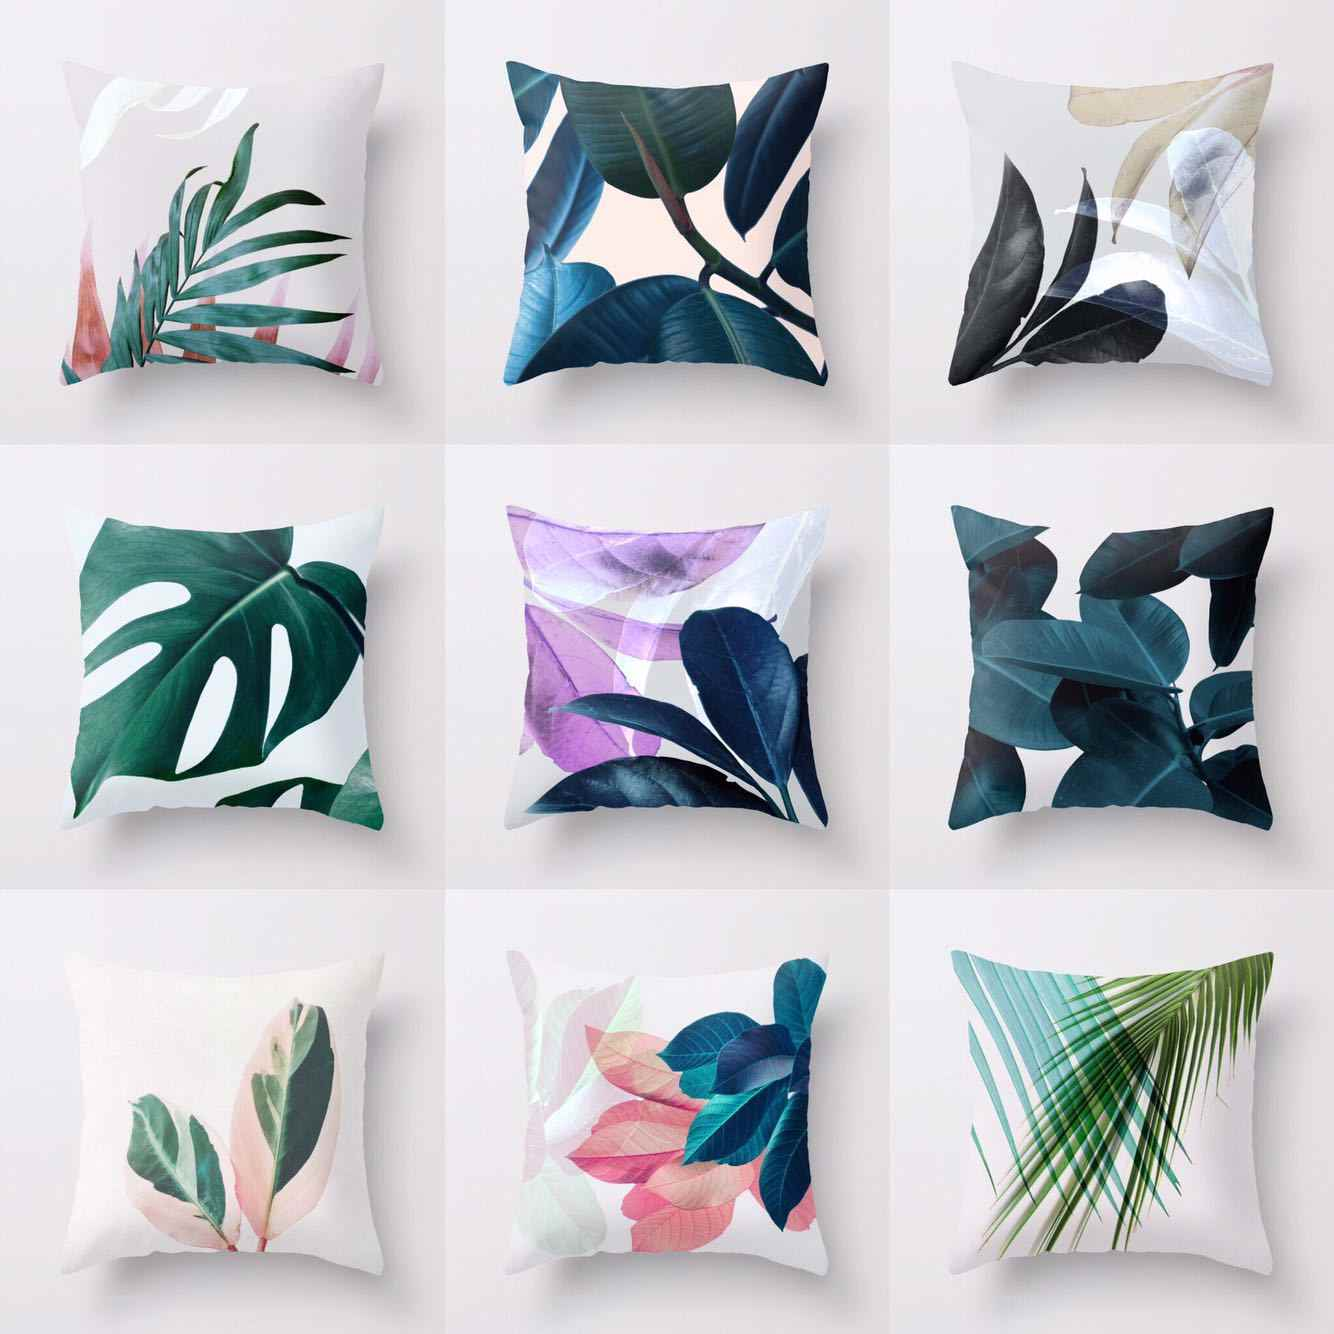 pillow covers for living room traditional home rooms detail feedback questions about plant leaf print cushion sofa waist pillowcase 45x45cm cover modern minimalist